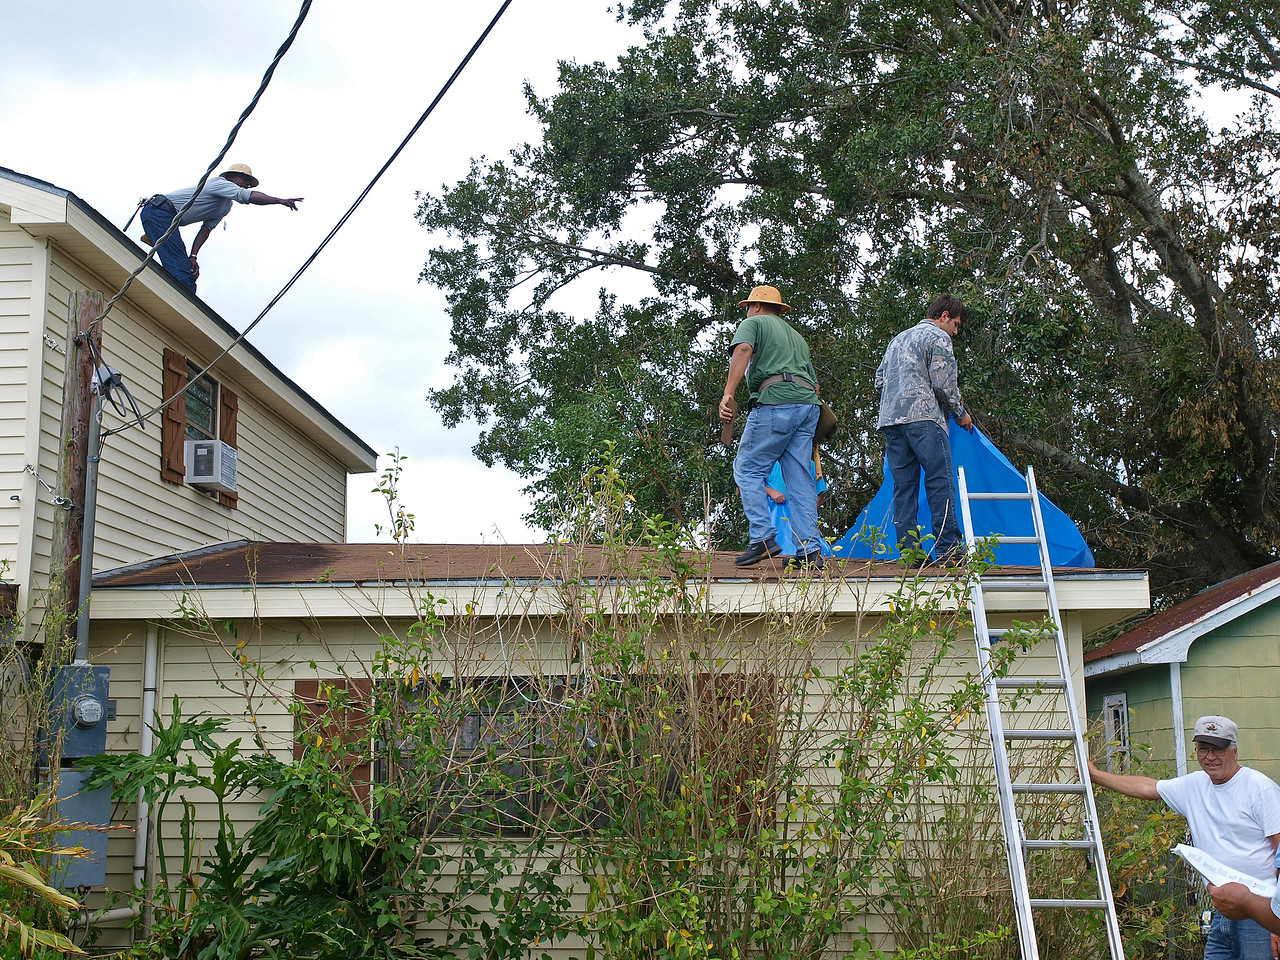 Jehovah's Witnesses Disaster recovery 1st response team tarping roofs in Galliano LA.